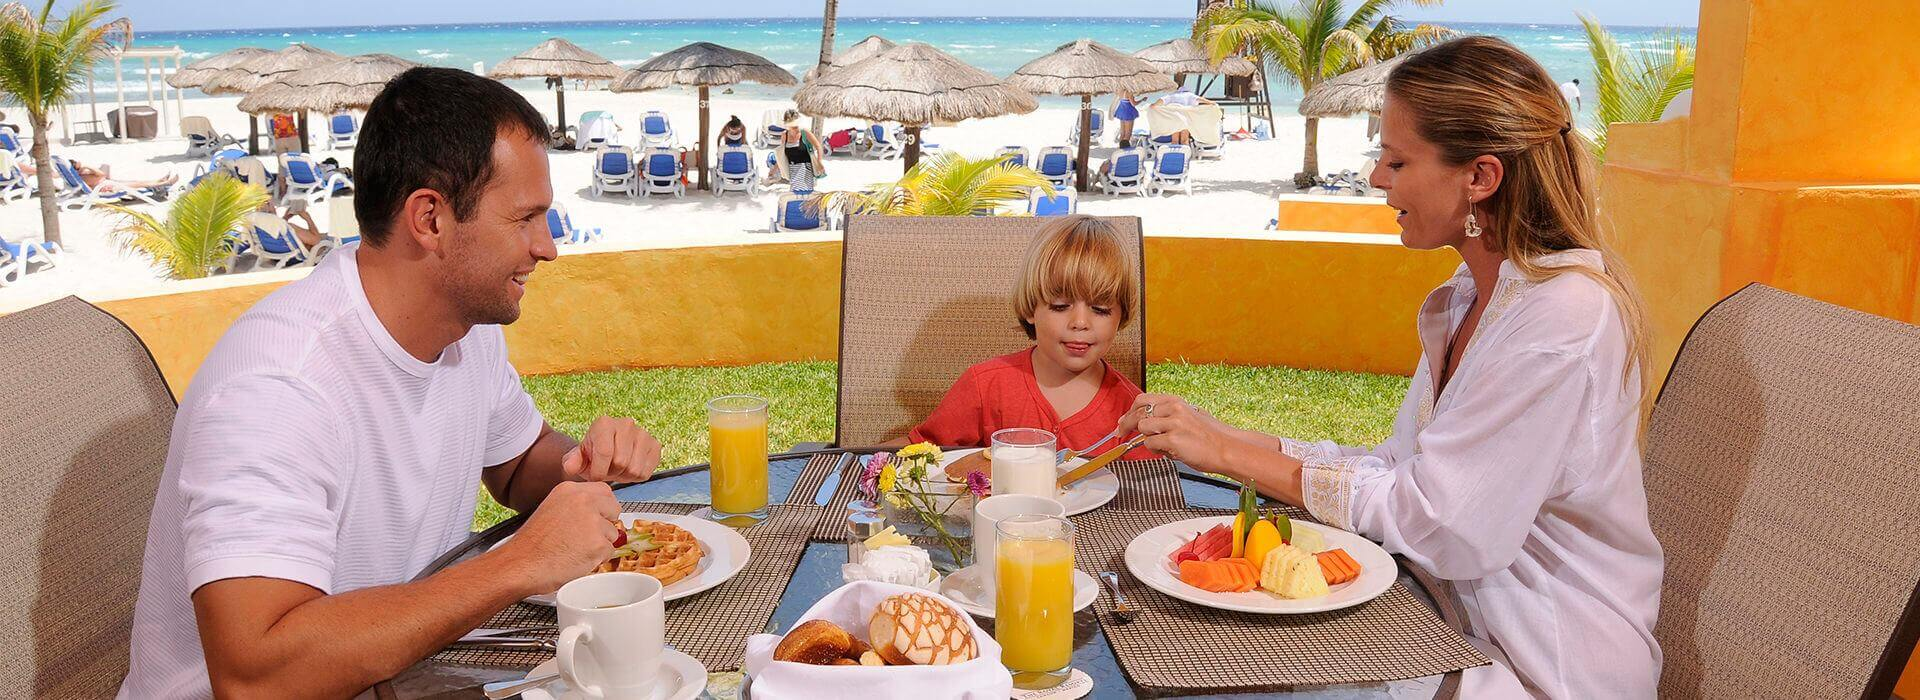 24 hours room service in Cancun resort